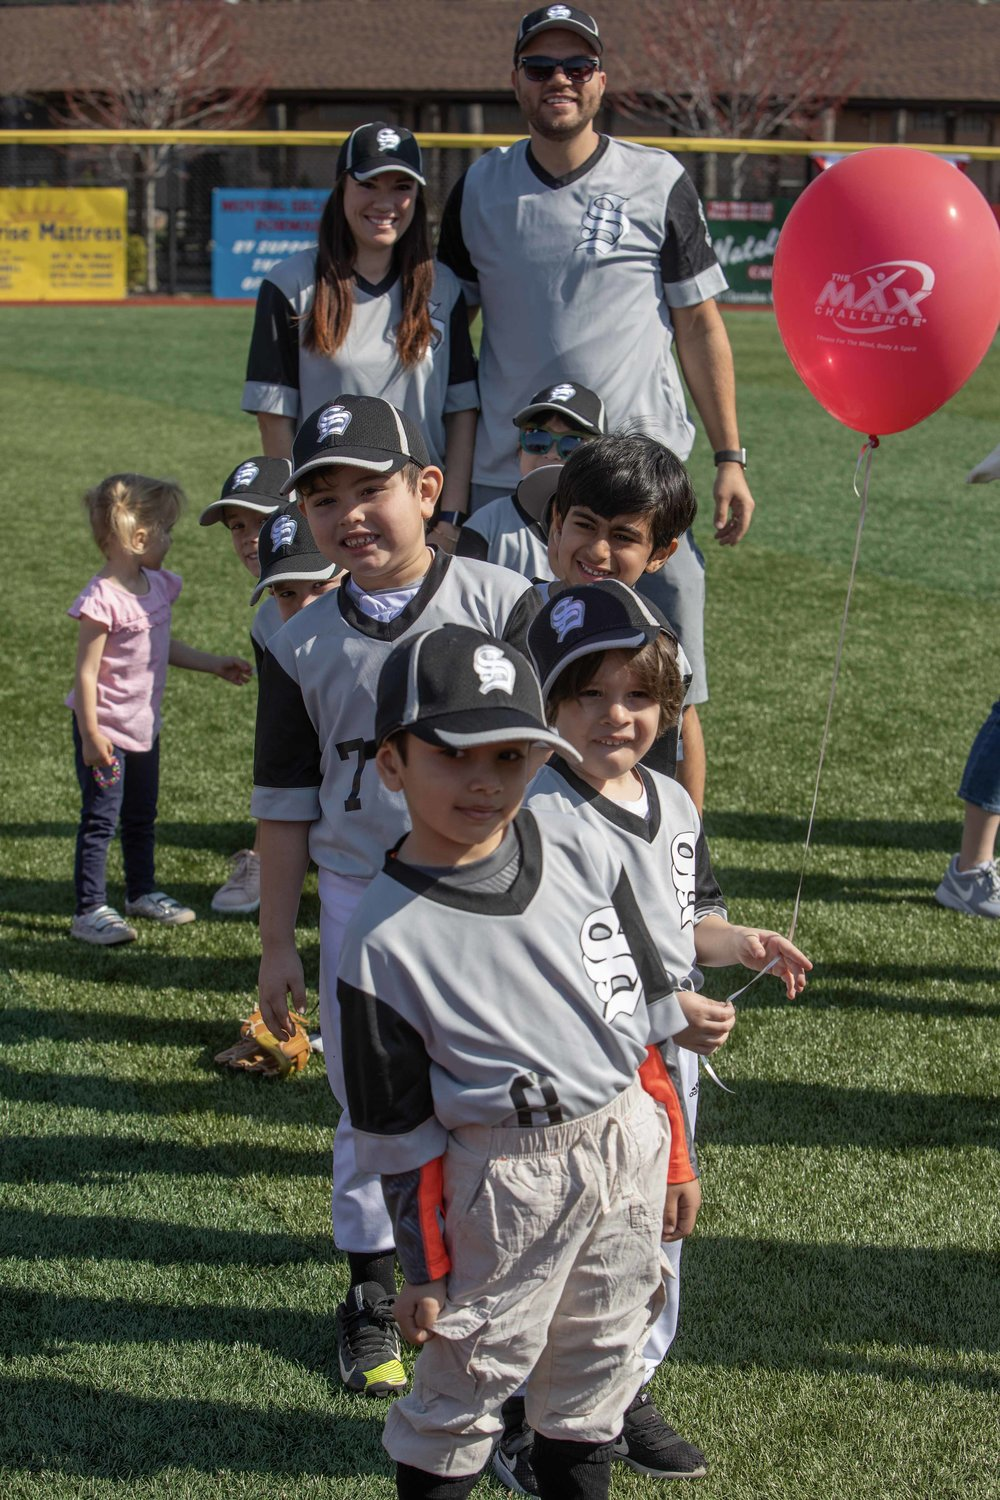 4-Seacacus Little League Kick Off 2018 (14 of 890).jpg